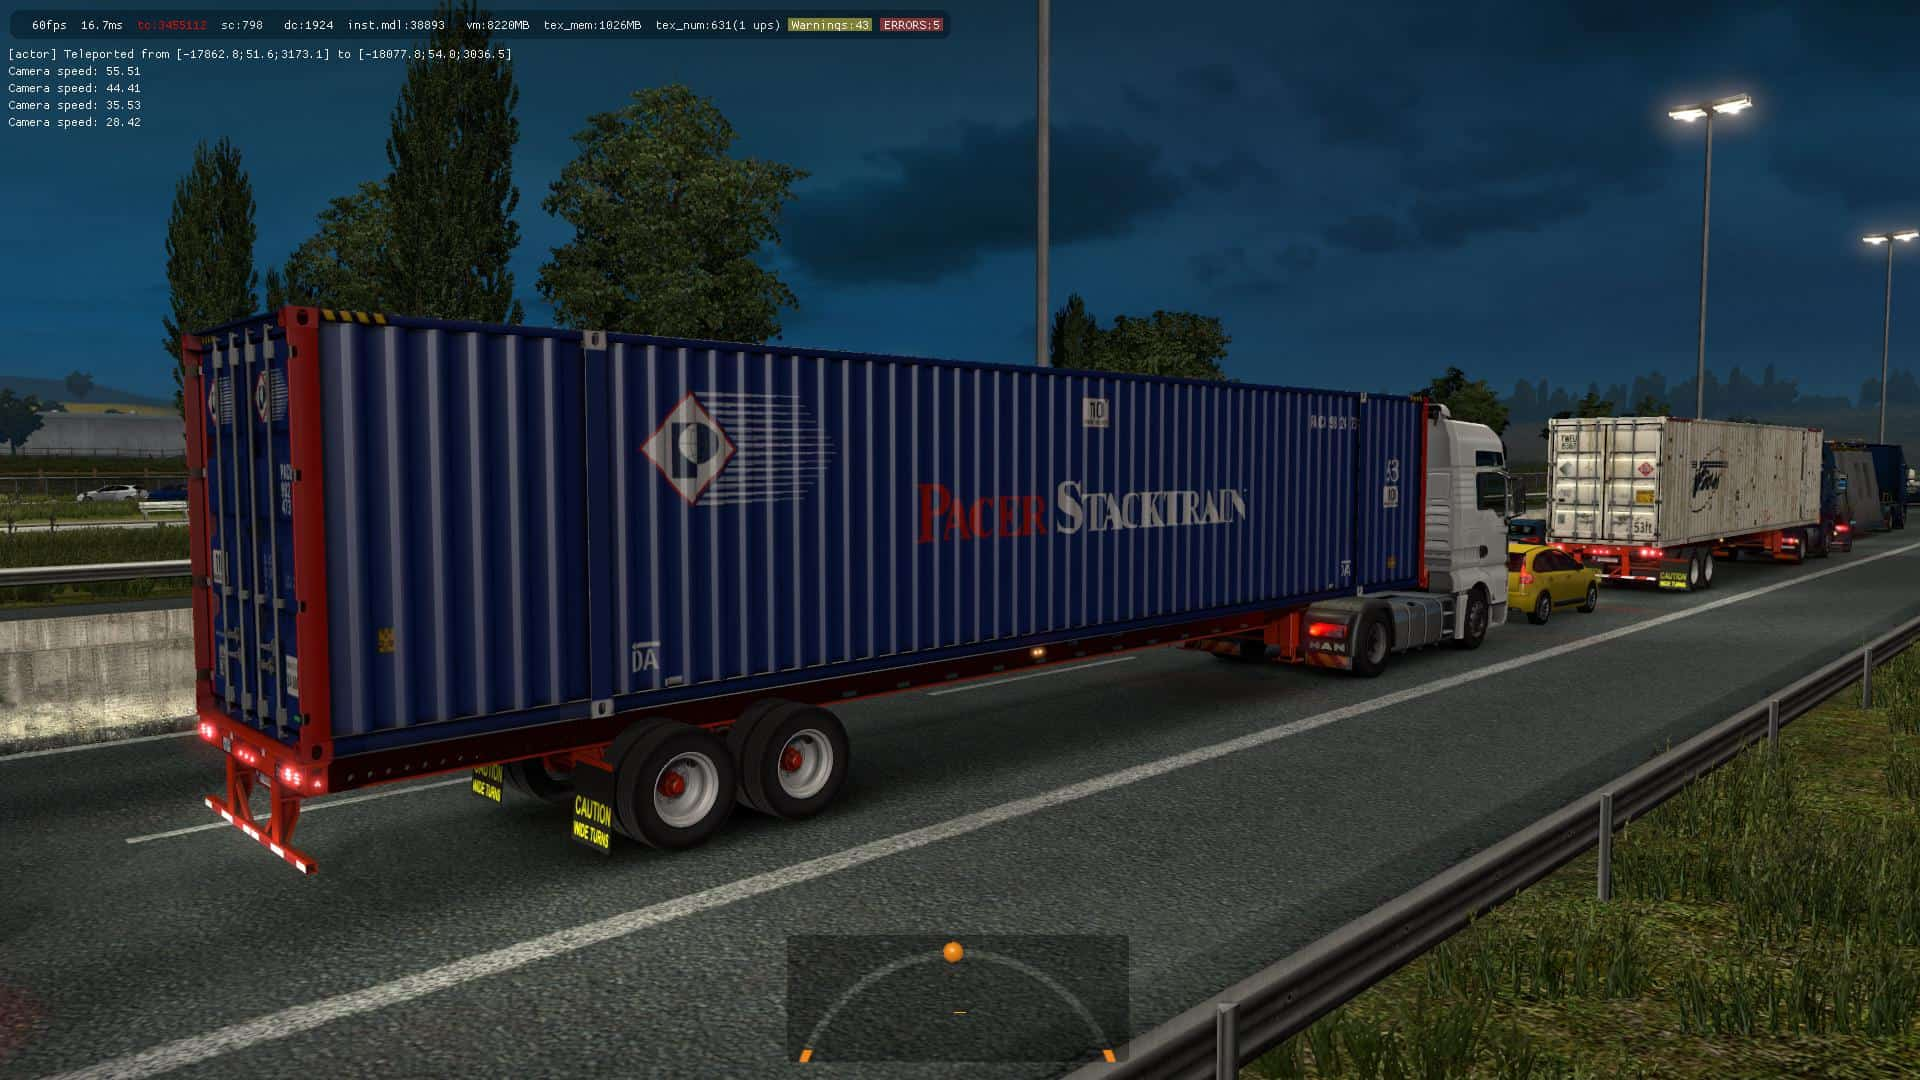 53 FT CONTAINERS IN TRAFFIC ETS2 1 35 X MOD - ETS2 Mod